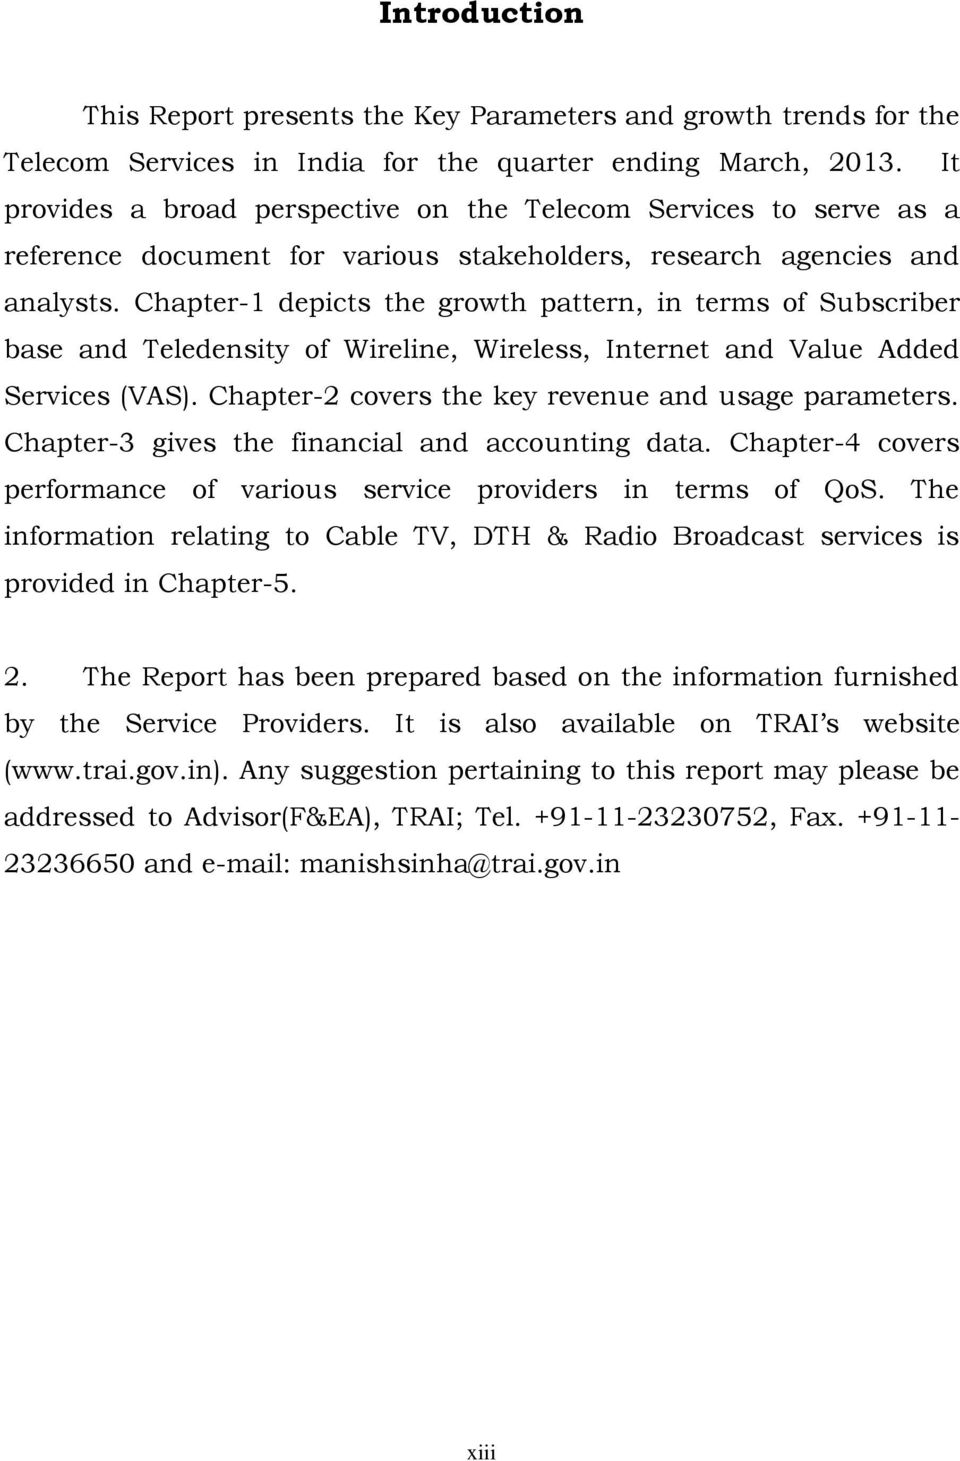 Chapter-1 depicts the growth pattern, in terms of Subscriber base and Teledensity of Wireline, Wireless, Internet and Value Added Services (VAS). Chapter-2 covers the key revenue and usage parameters.